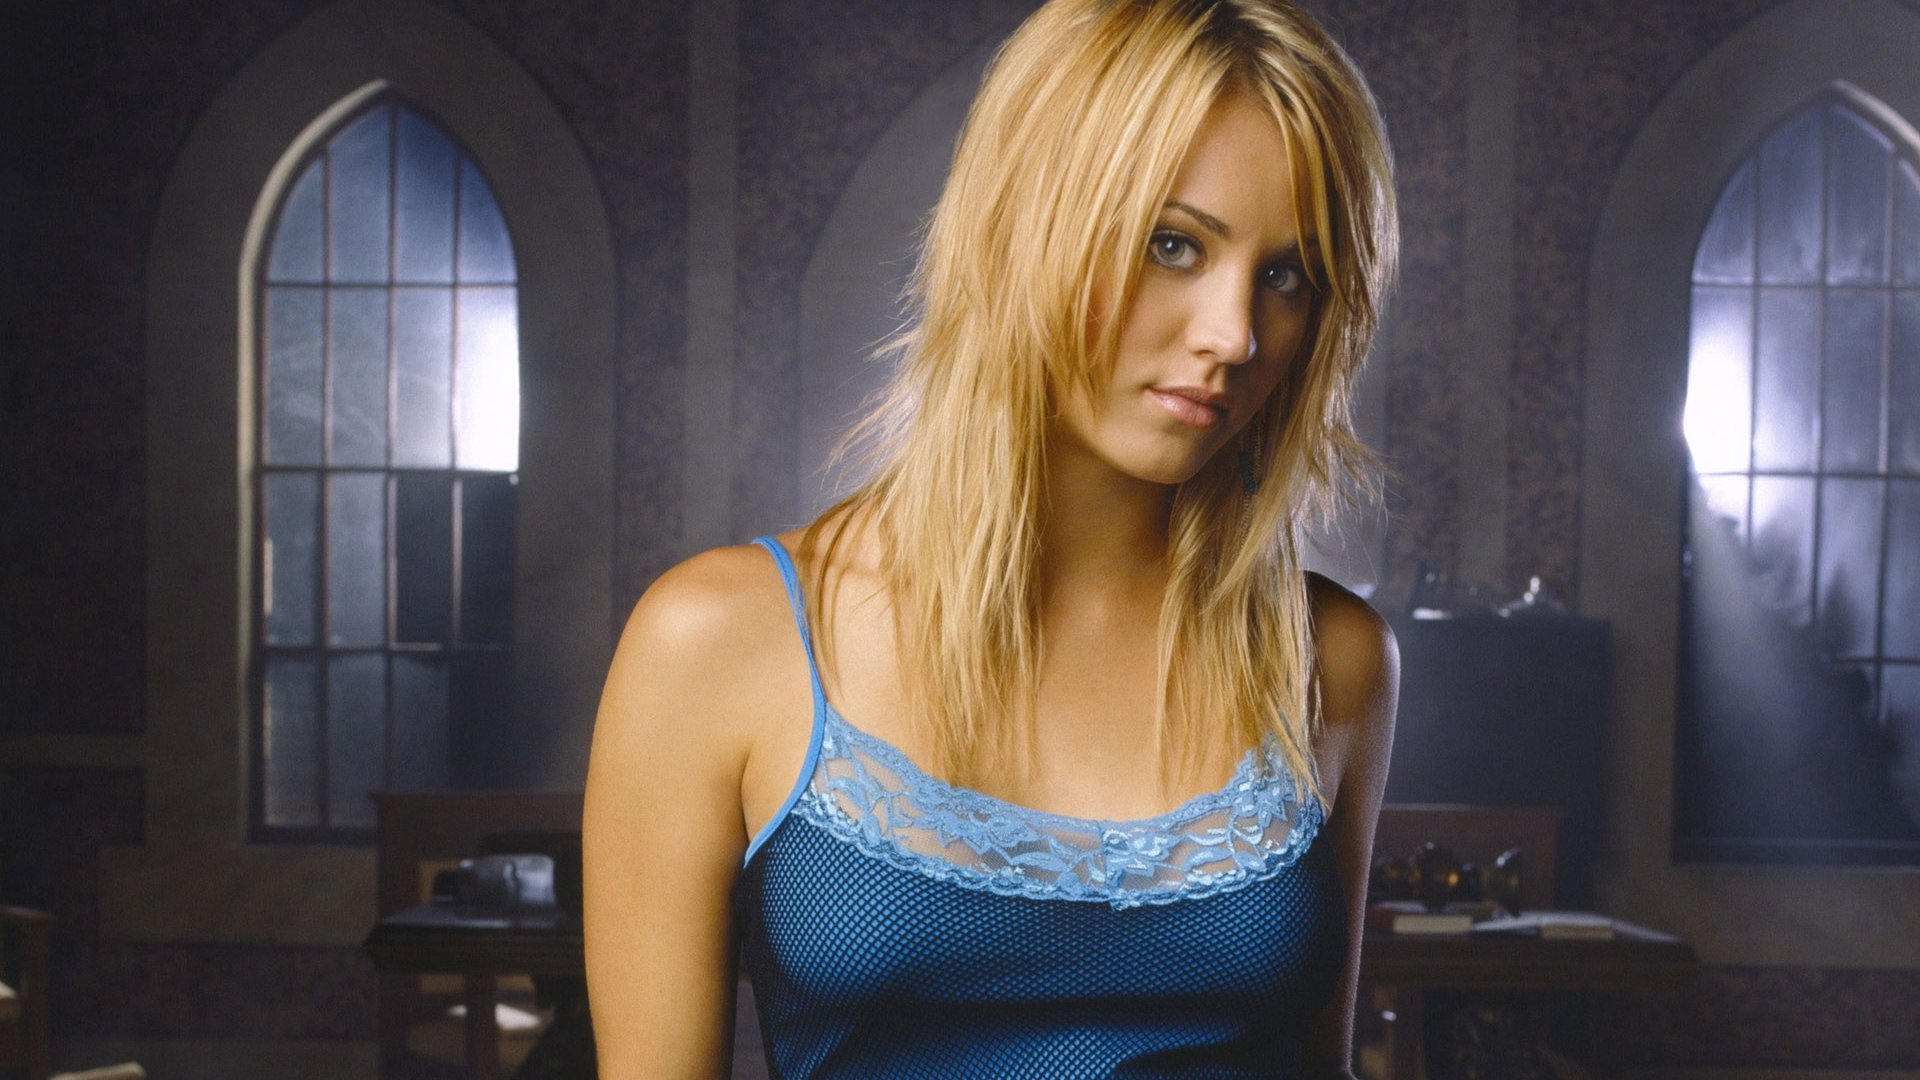 Download full hd Kaley Cuoco computer background ID:130027 for free